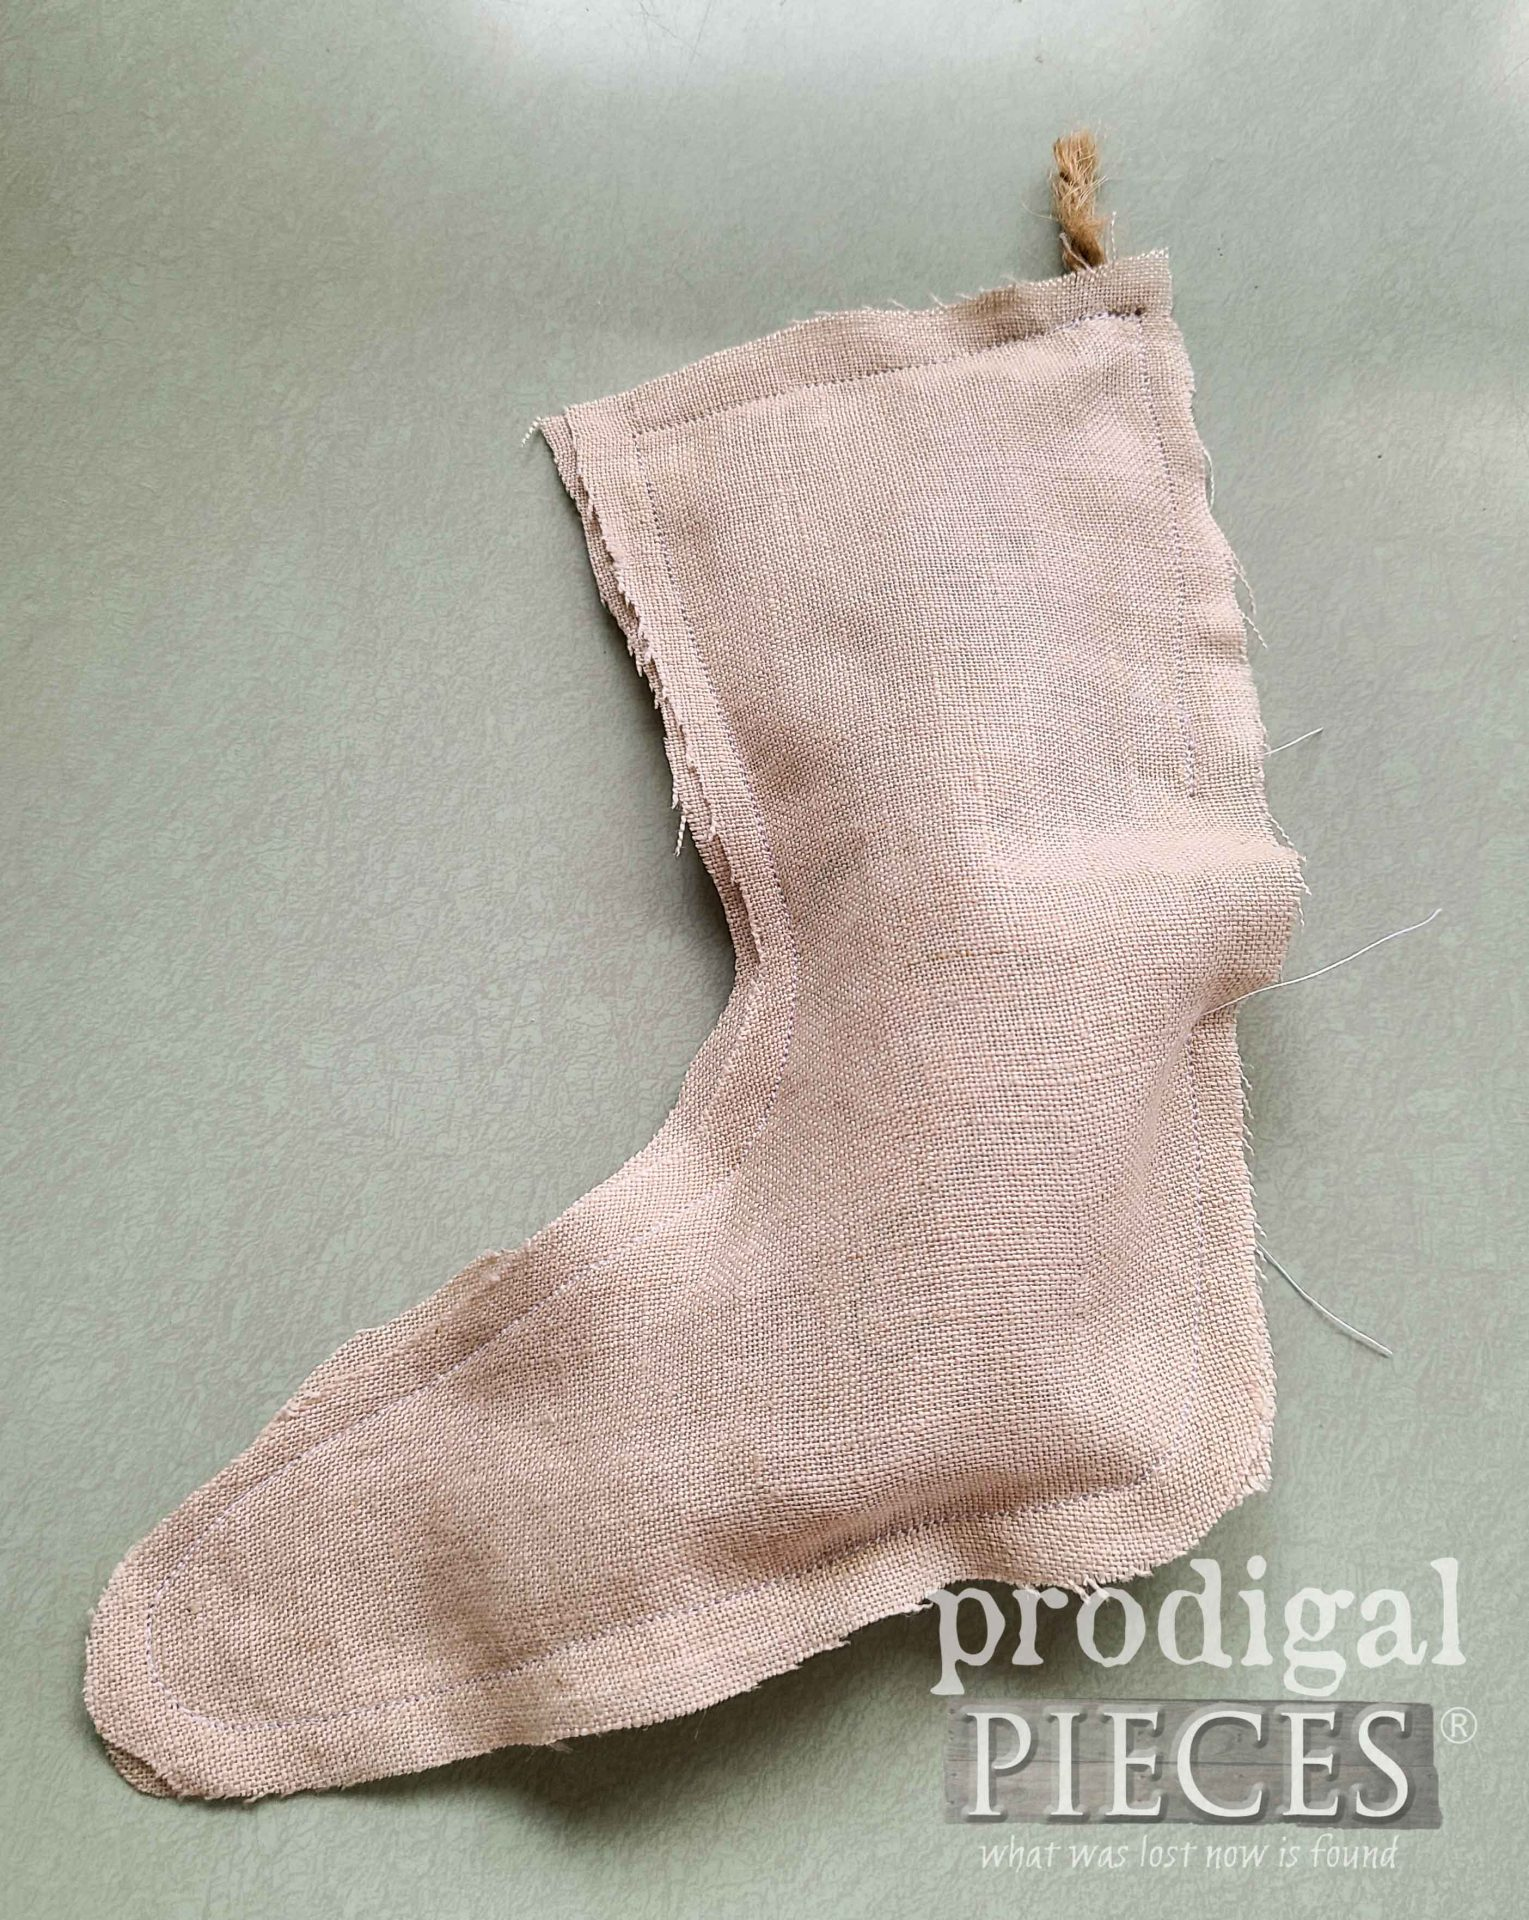 Stuffed Linen Stocking for Farmhouse Decor by Larissa of Prodigal Pieces | prodigalpieces.com